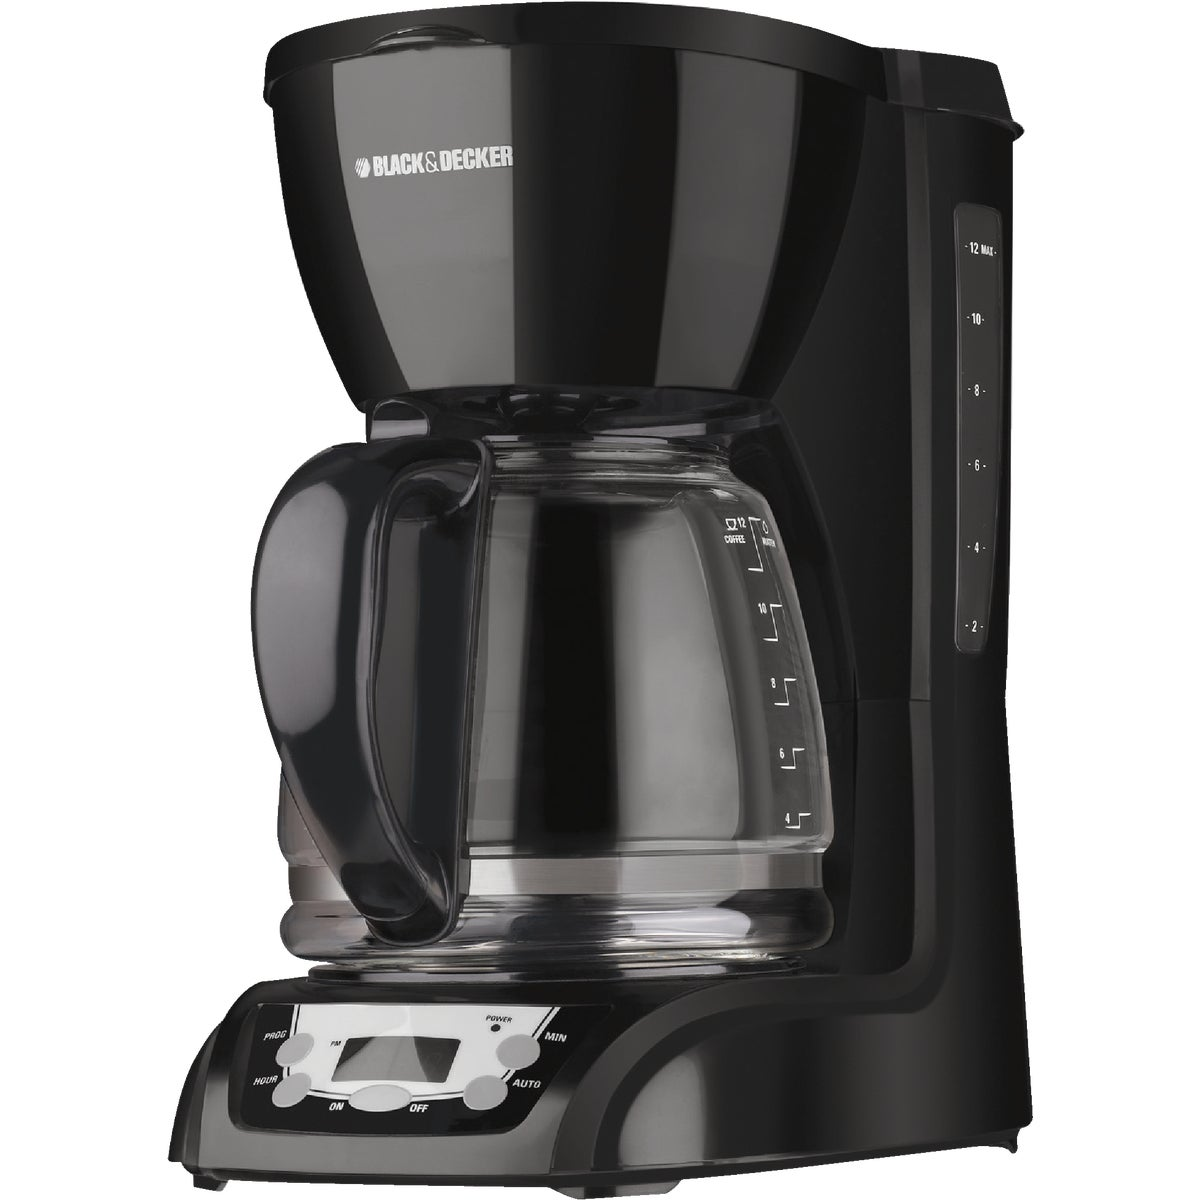 BLK 12-CUP COFFEE MAKER